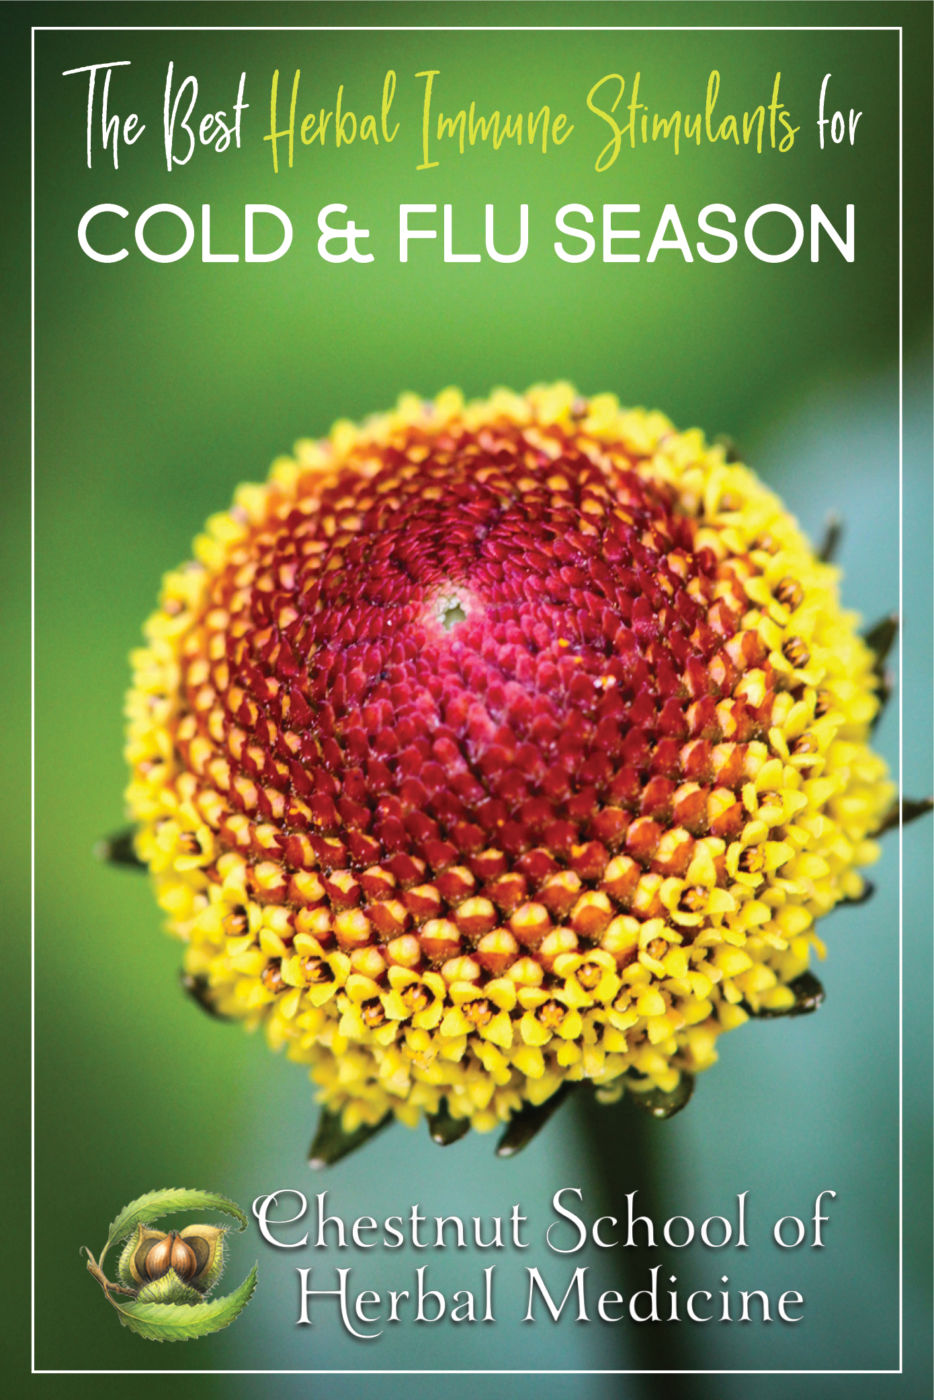 The Best Herbal Immune Stimulants for Cold and Flu Season